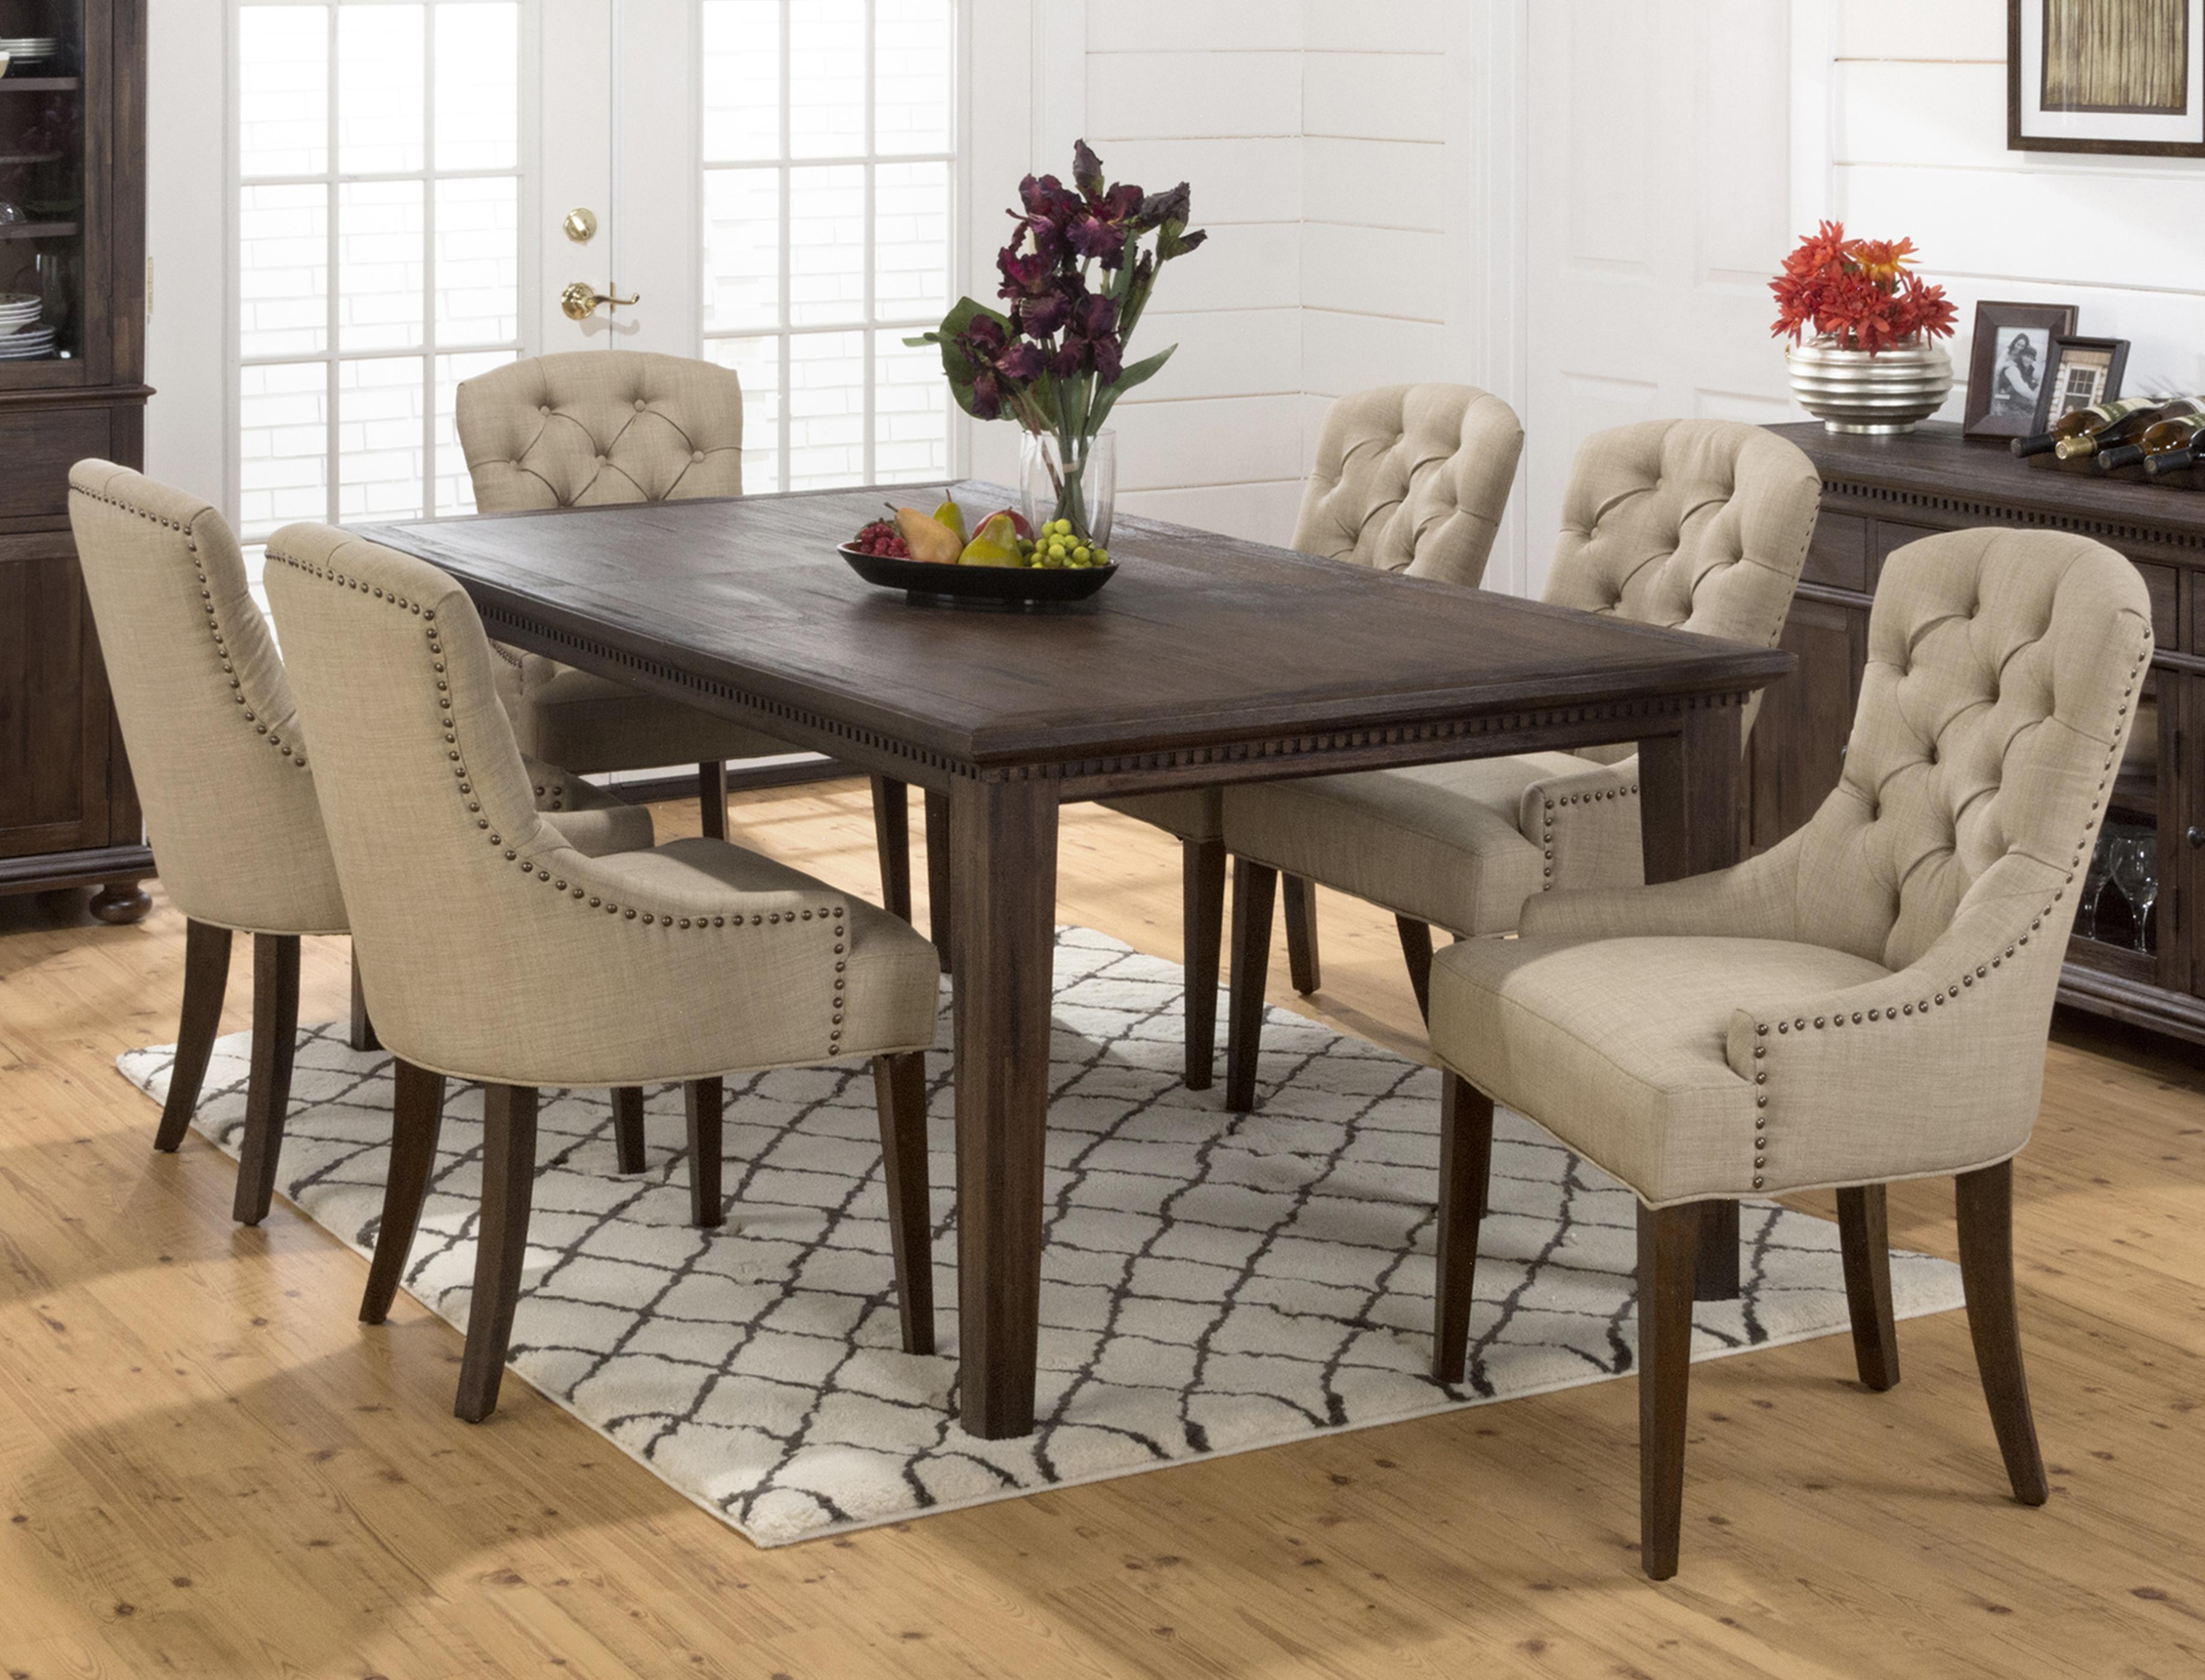 Image of: Nailhead Dining Chair with Table